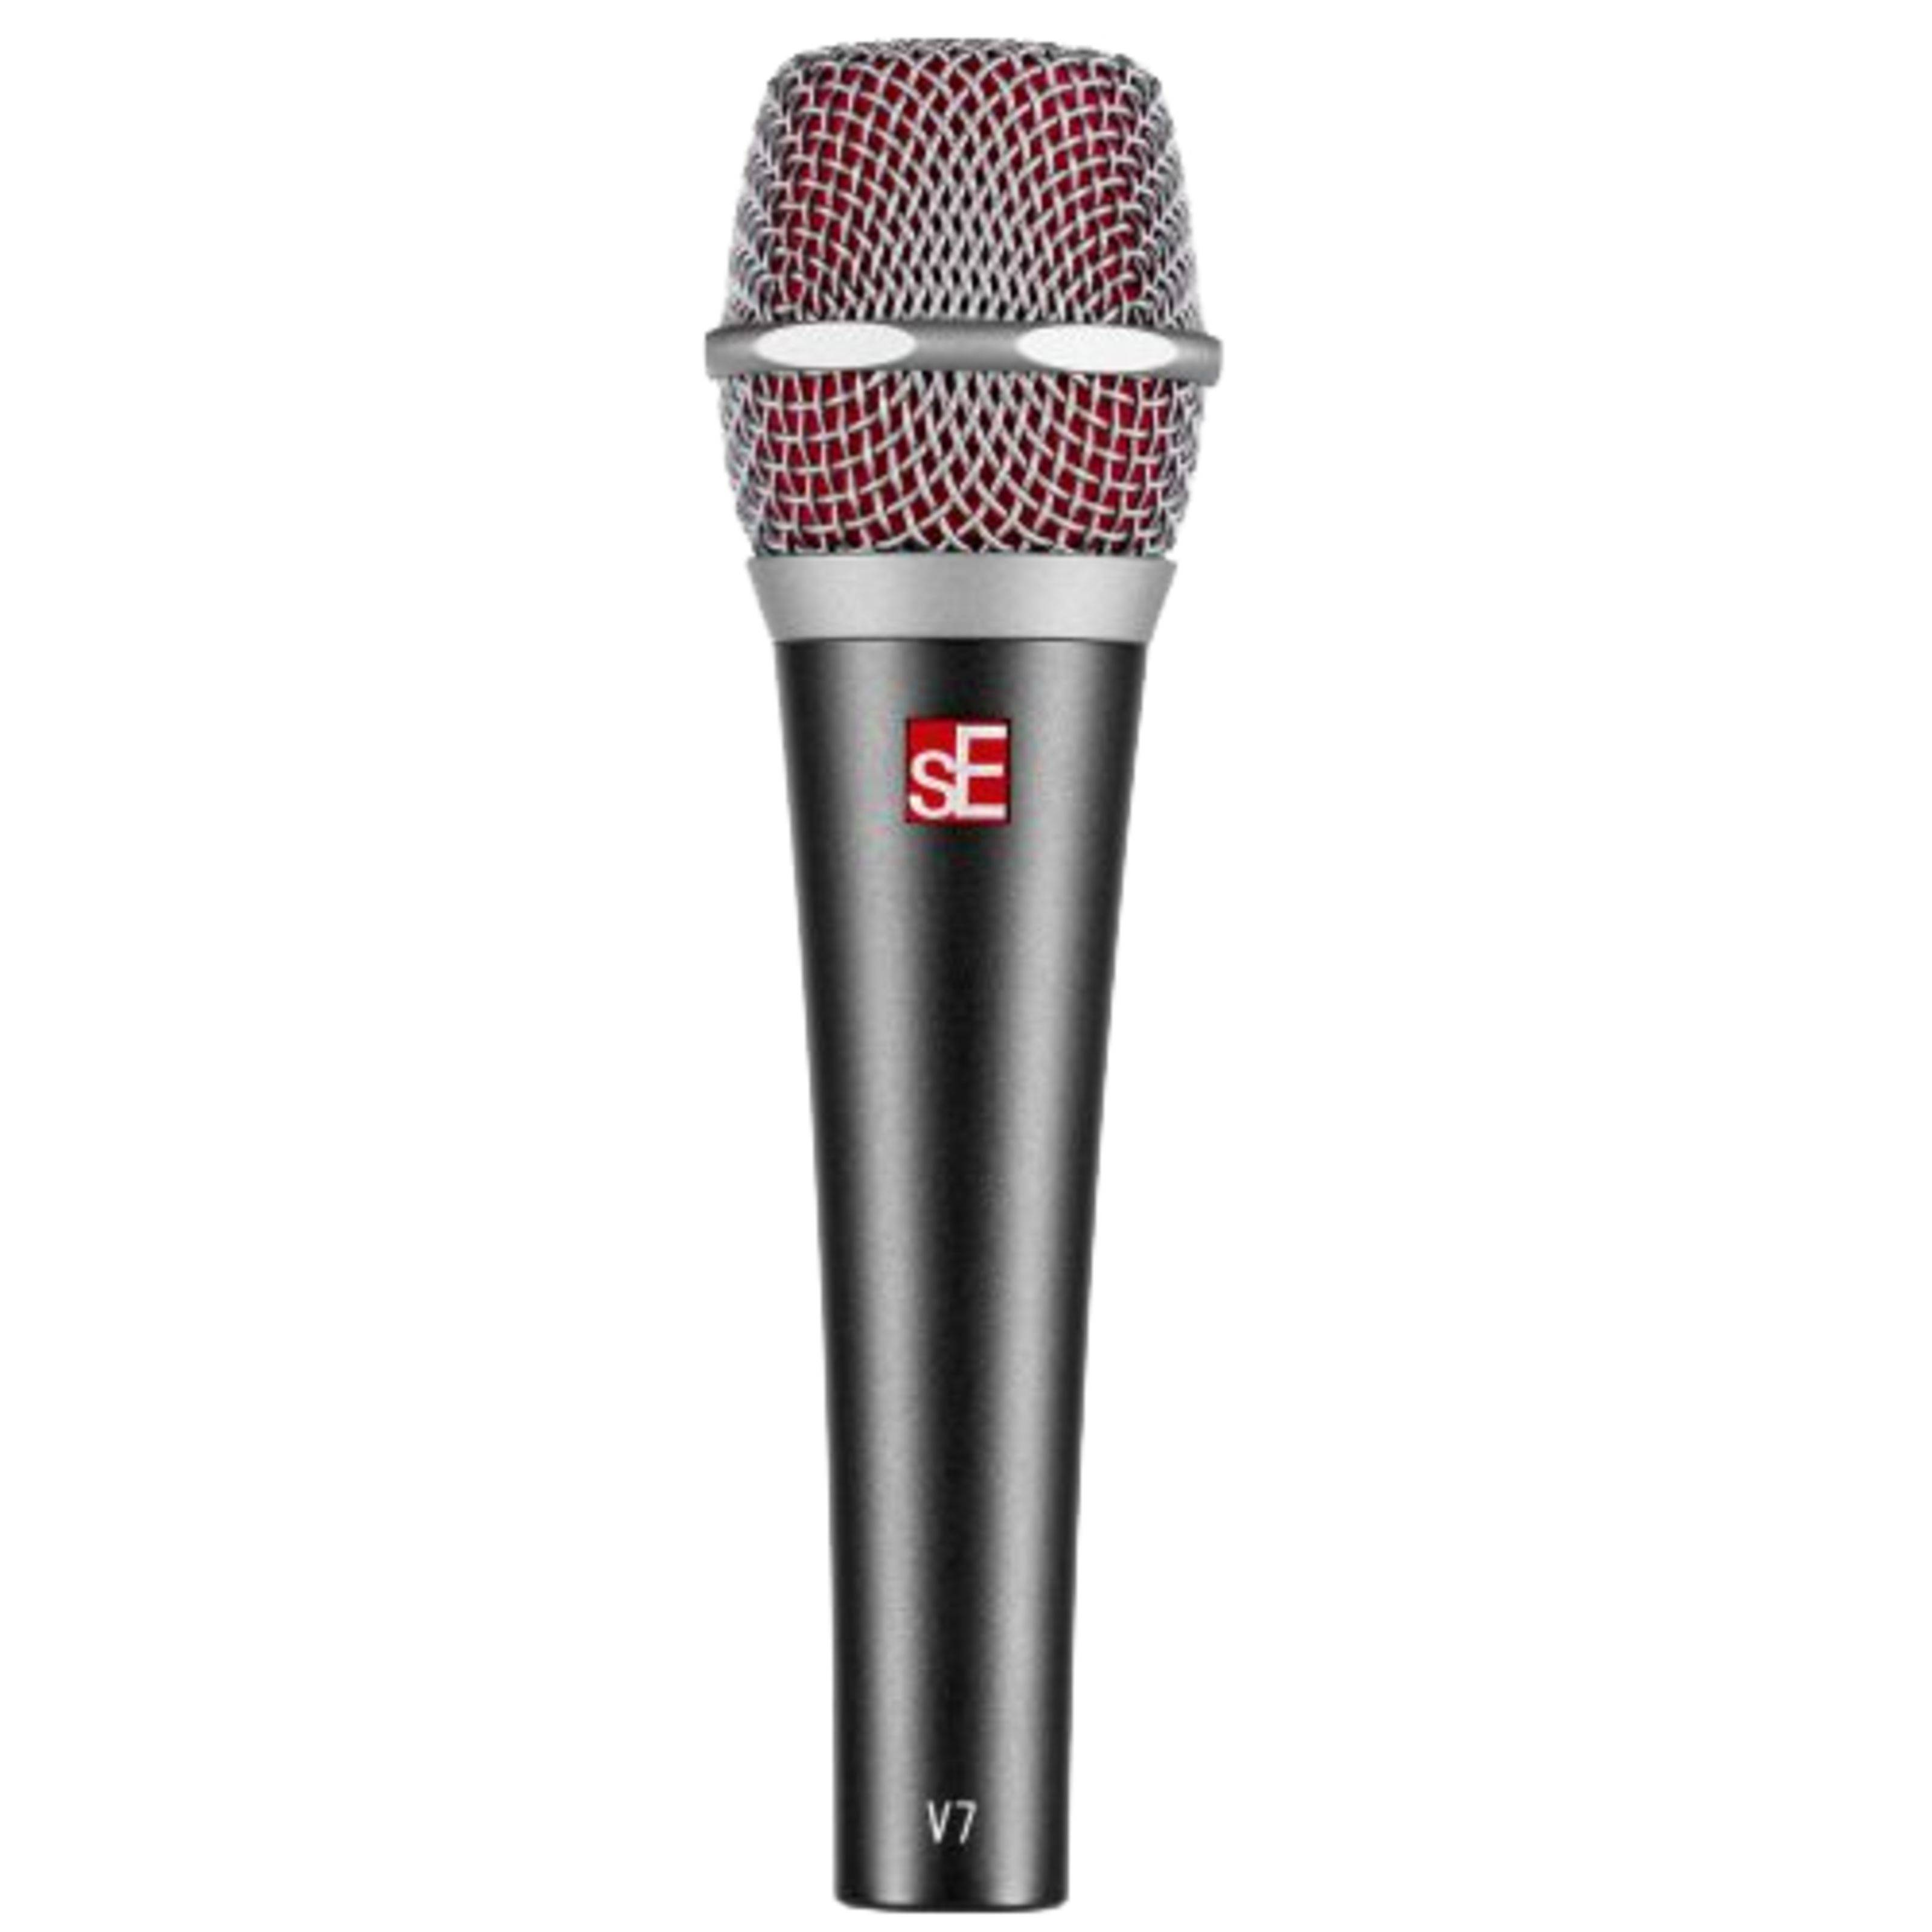 SE Electronics V7 Vocal Microphone supercardioid dynamic